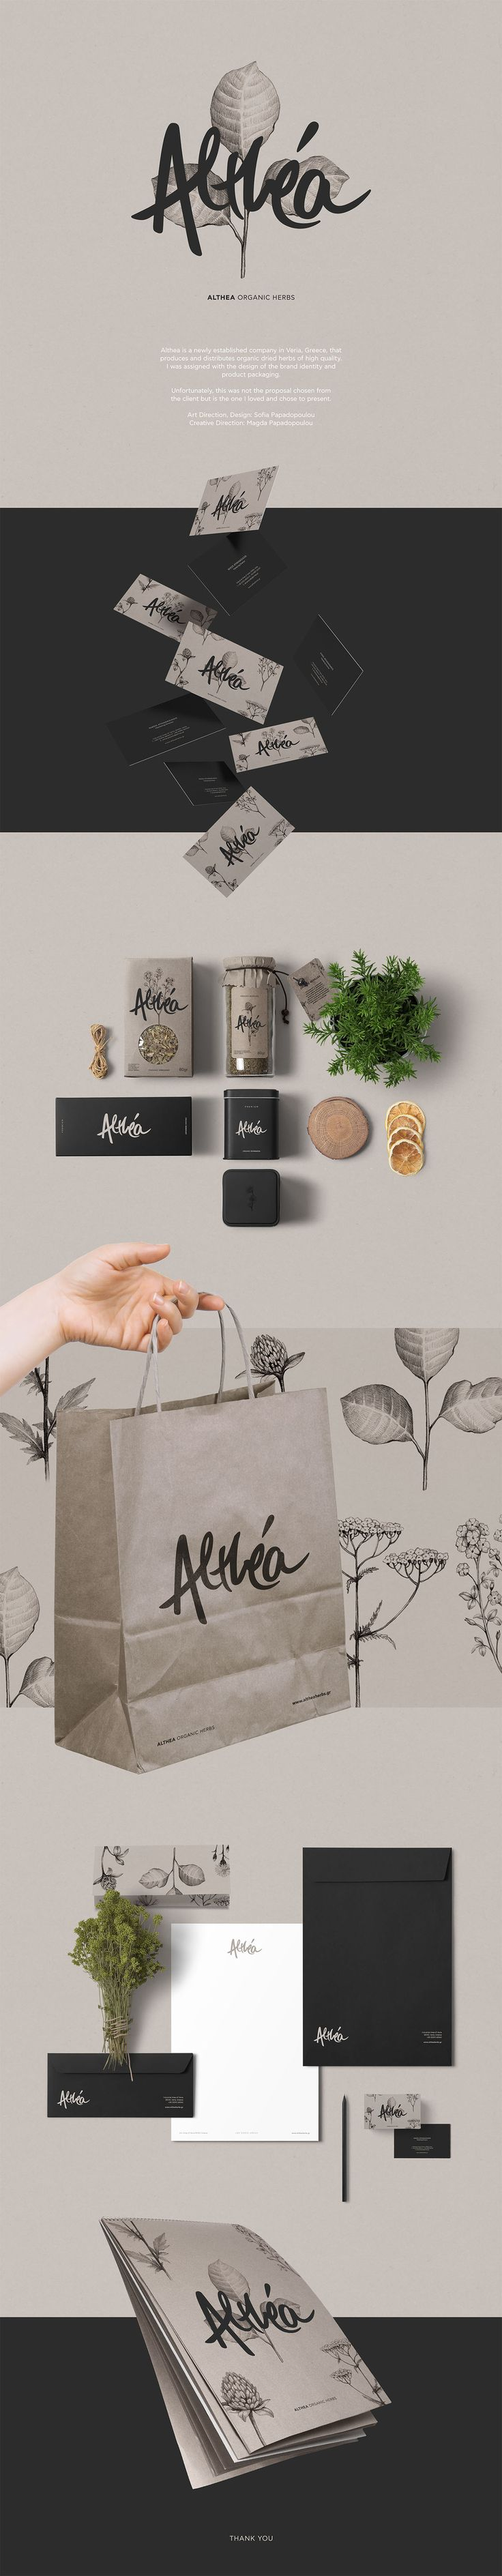 Althea is a newly established company in Veria, Greece, that produces and distributes organic dried herbs of high quality. I was assigned with the design of the brand identity and product packaging.